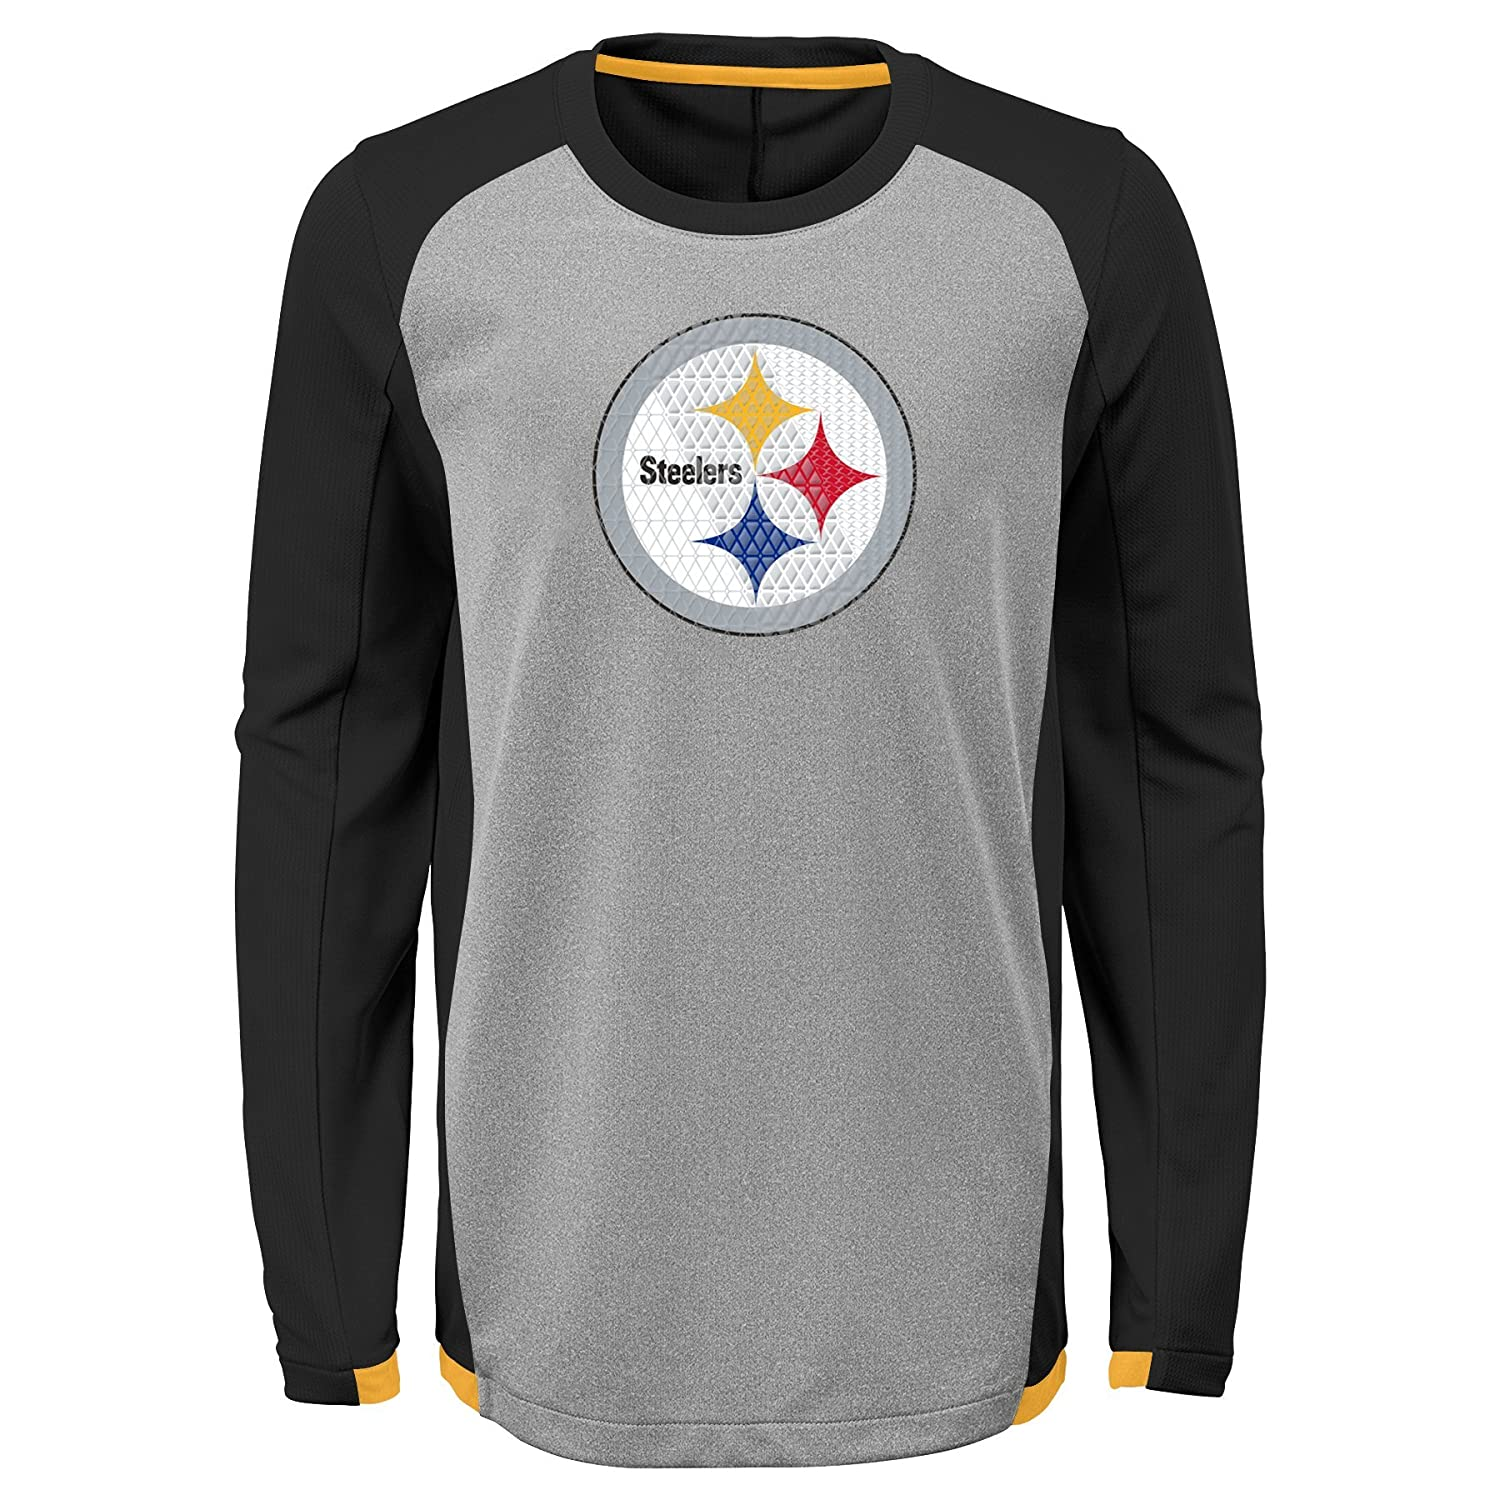 Outerstuff NFL Boys Kids /& Youth Boys mainframe Performance Tee